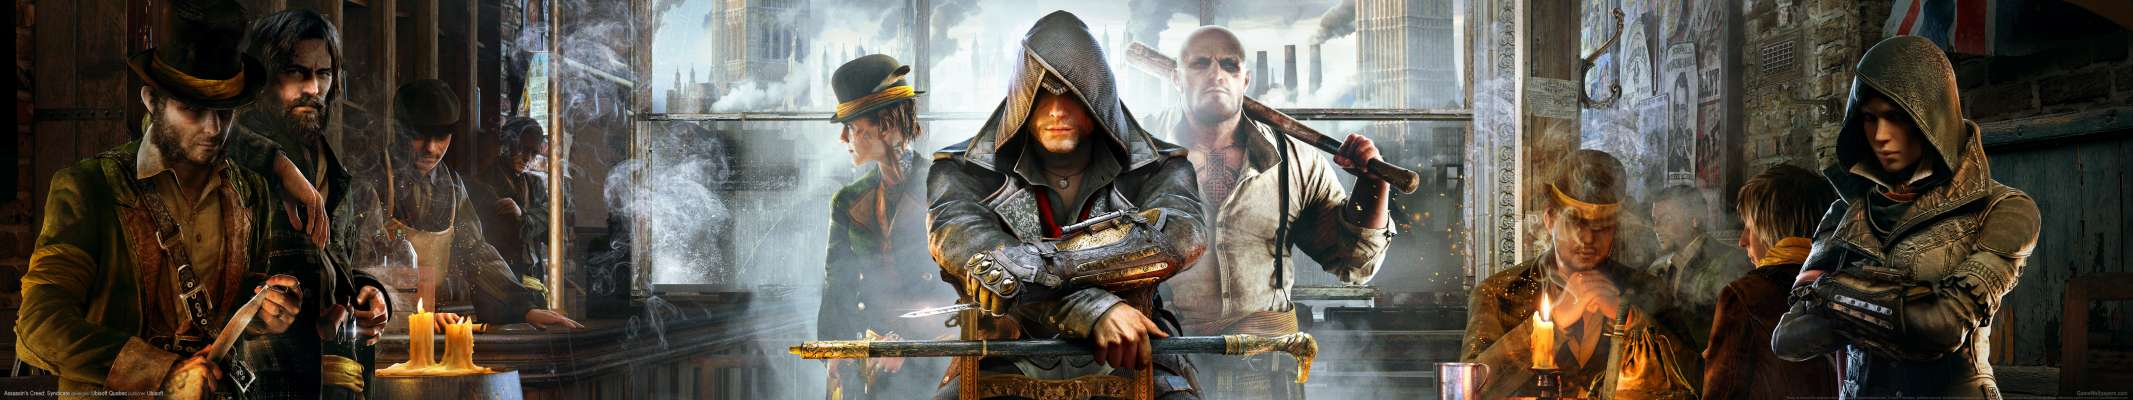 Assassin's Creed: Syndicate triple screen achtergrond